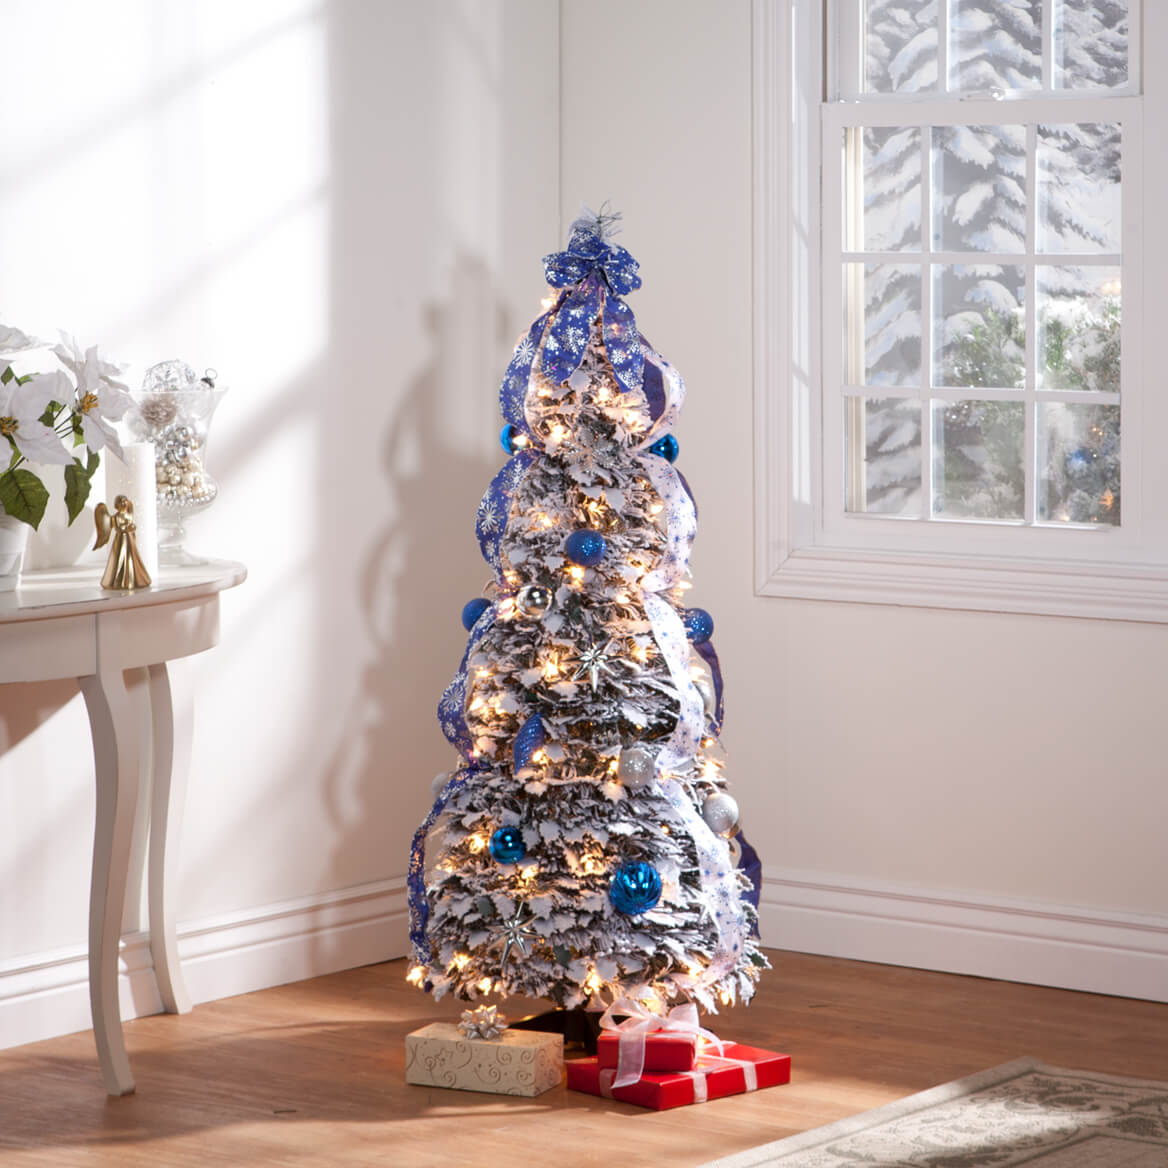 Indoor Read Reviews Write A Review Read Fully Decorated Flocked Tree Miles Kimball 4 Foot Tree Amazon 4 Foot Tree Skirt houzz 01 4 Foot Christmas Tree